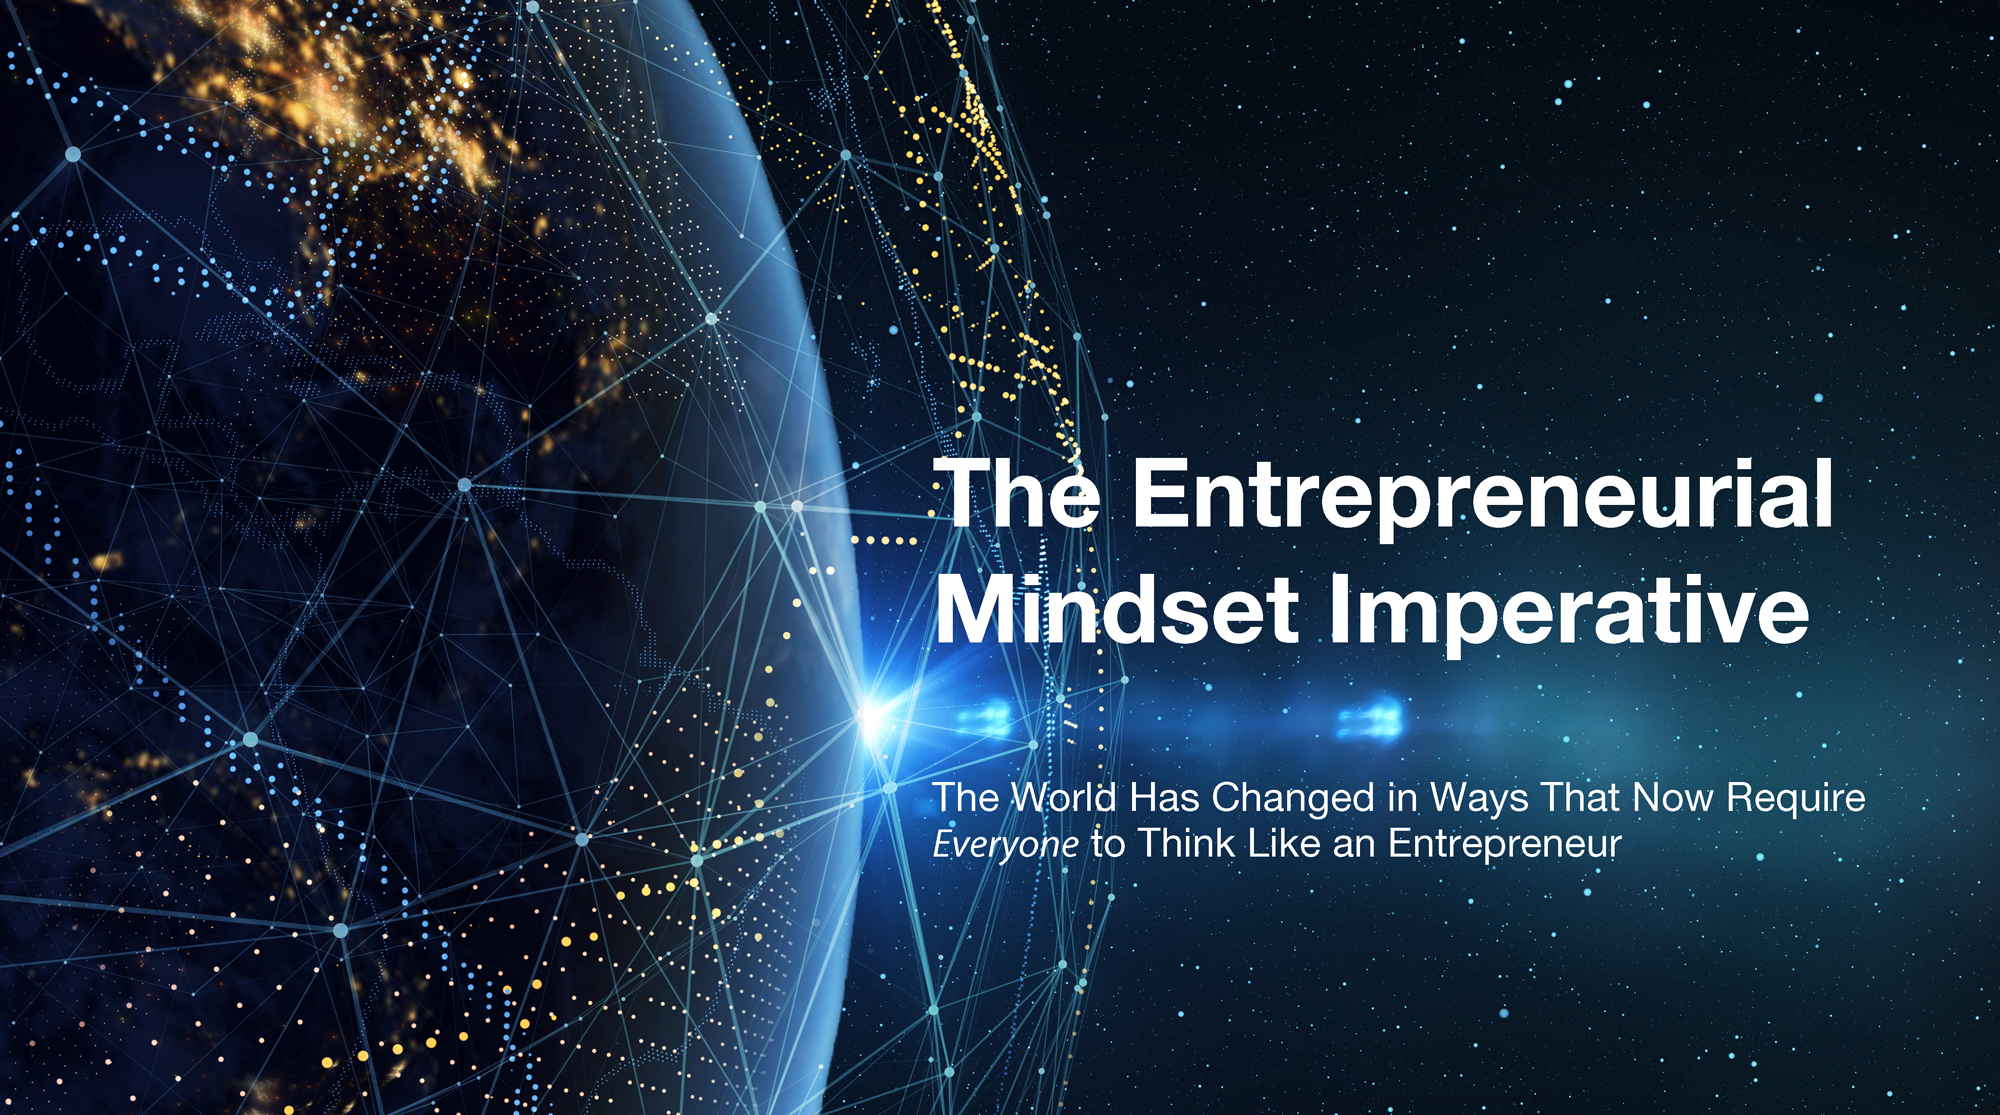 Entrepreneurial Mindset Imperative Cover